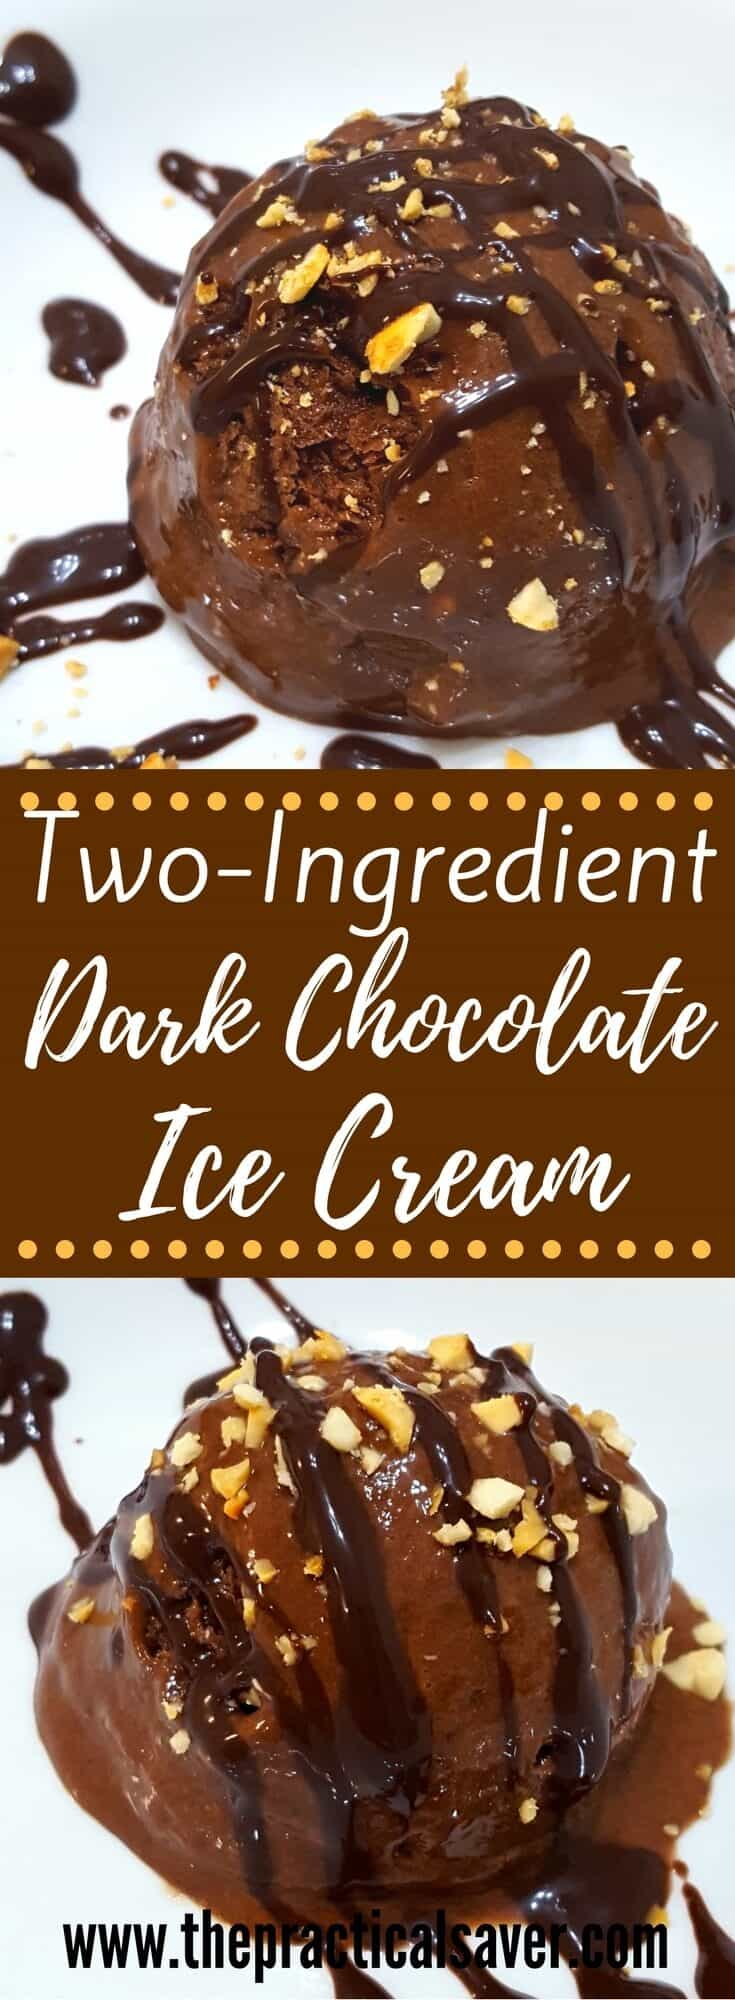 Two-Ingredient Dark Chocolate Ice Cream